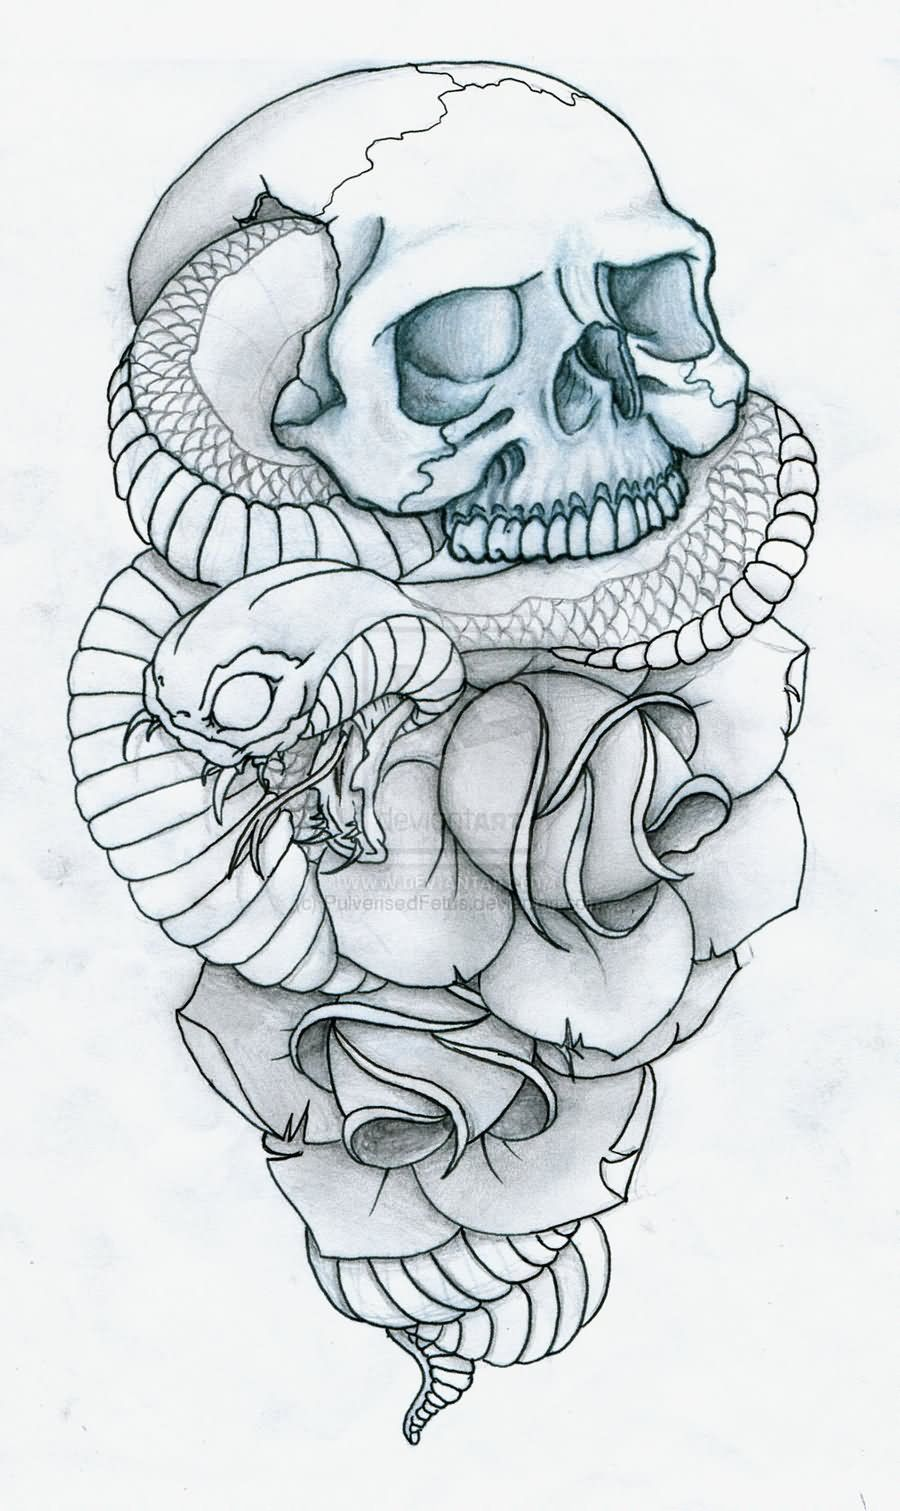 Vampire Skull With Snake And Roses Tattoo Design Skull Rose Tattoos Snake Tattoo Design Rose Tattoos